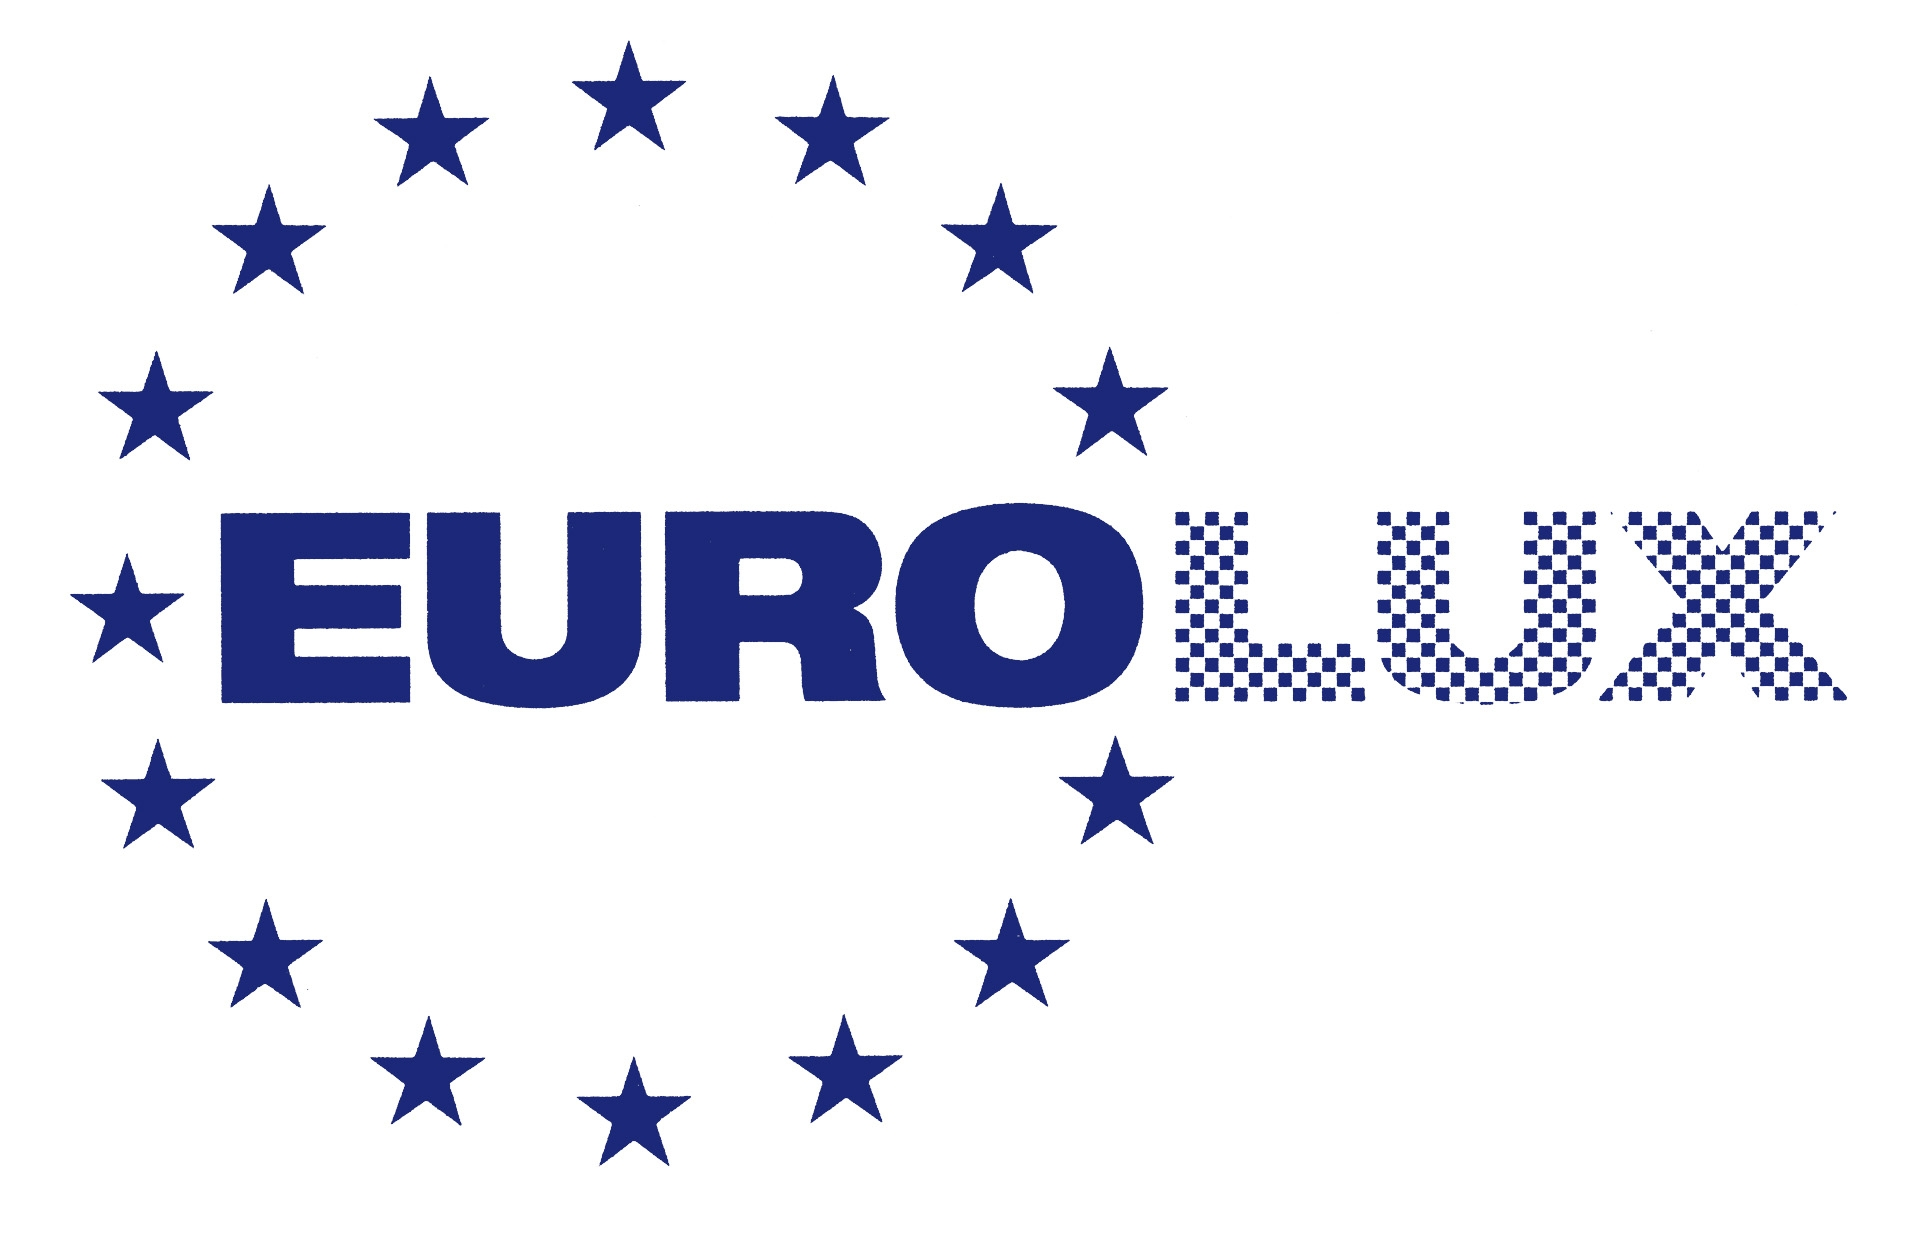 EUROLUX - European Group for Rooflights and Smoke-Ventilation